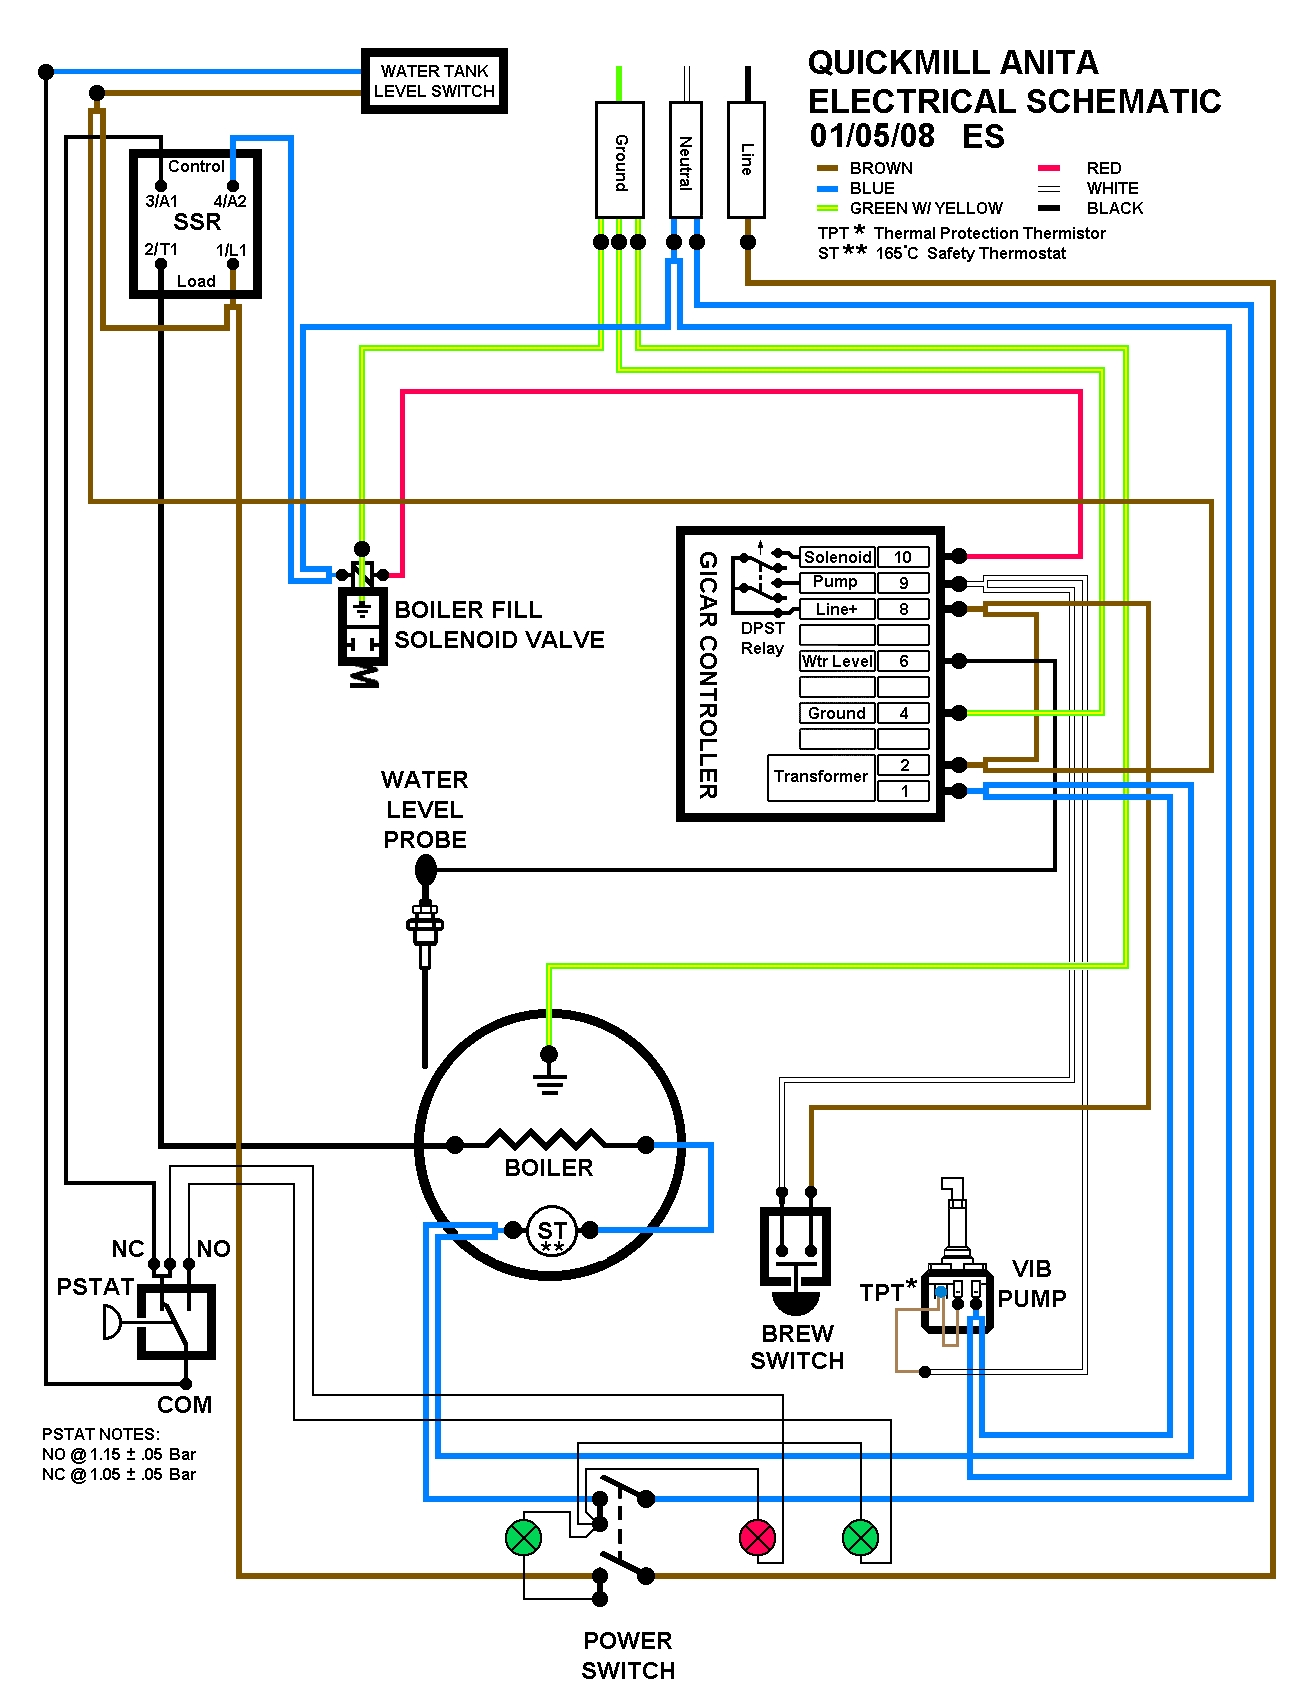 QM_ELEC_1 wiring diagram for a boiler the wiring diagram readingrat net steam boiler wiring diagram at panicattacktreatment.co